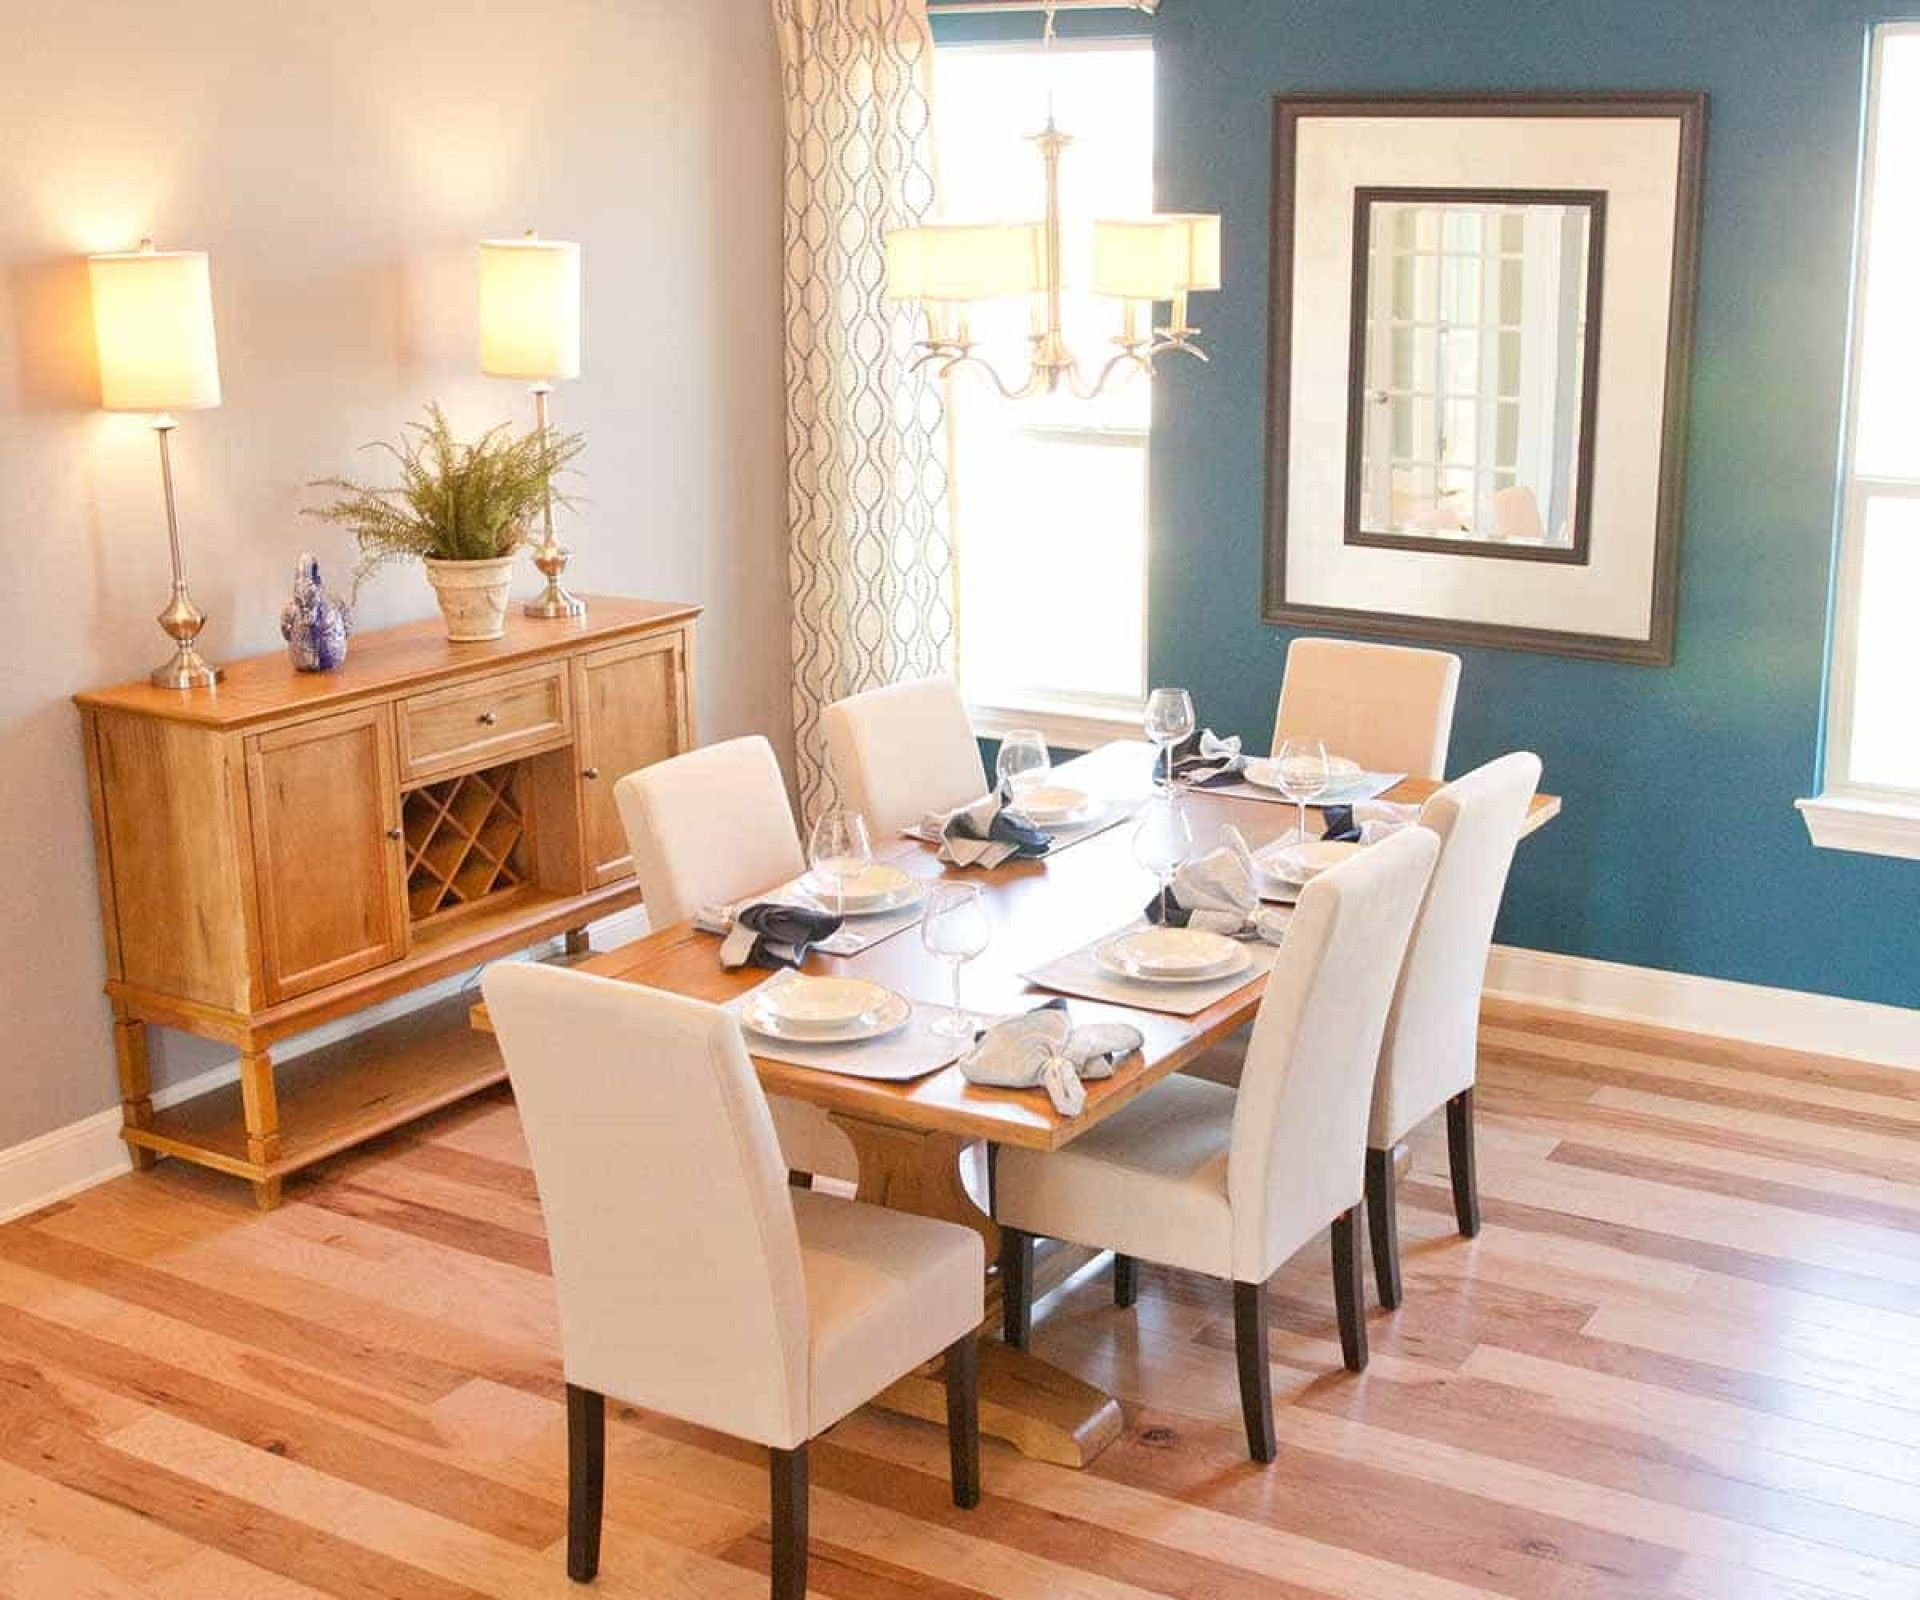 Light Wood Accent Wall: Create A Dining Room With Light Hardwood Floors And A Dark